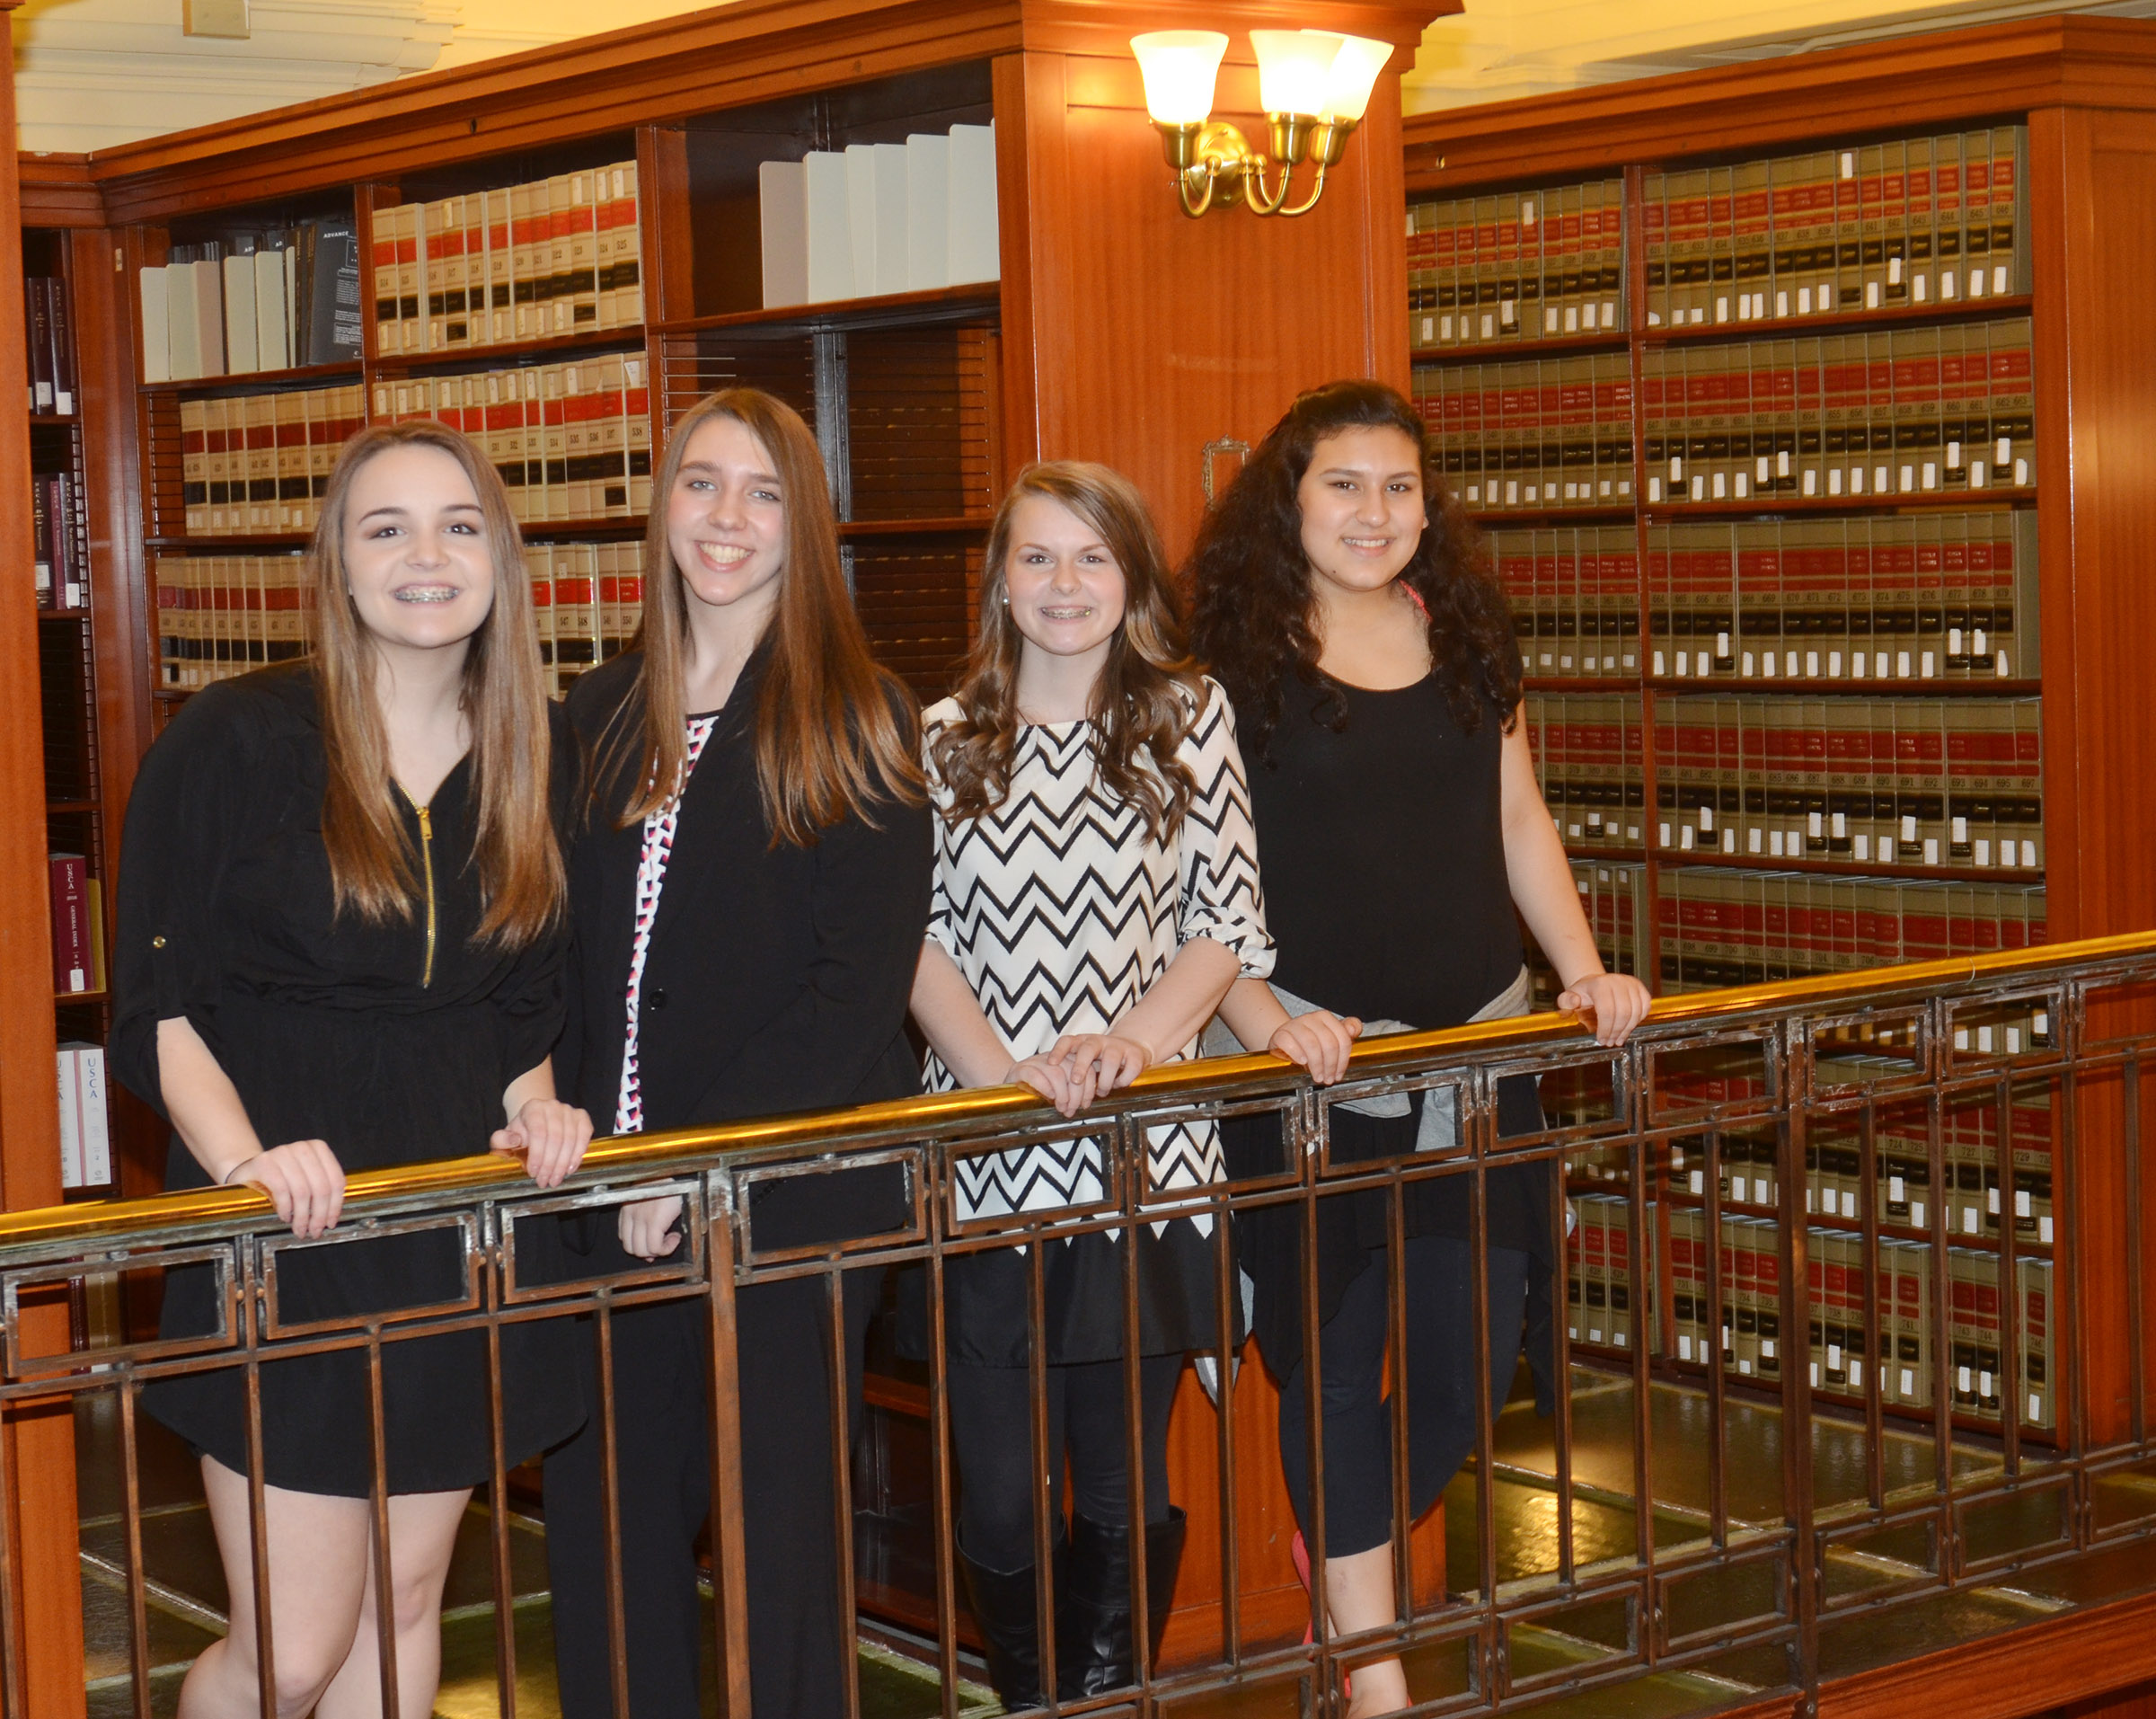 From left, CMS eighth-graders Kenzi Forbis, Abi Wiedewitsch, Taylor Knight and Anna Clara Moura pose for a photo in the capitol library.